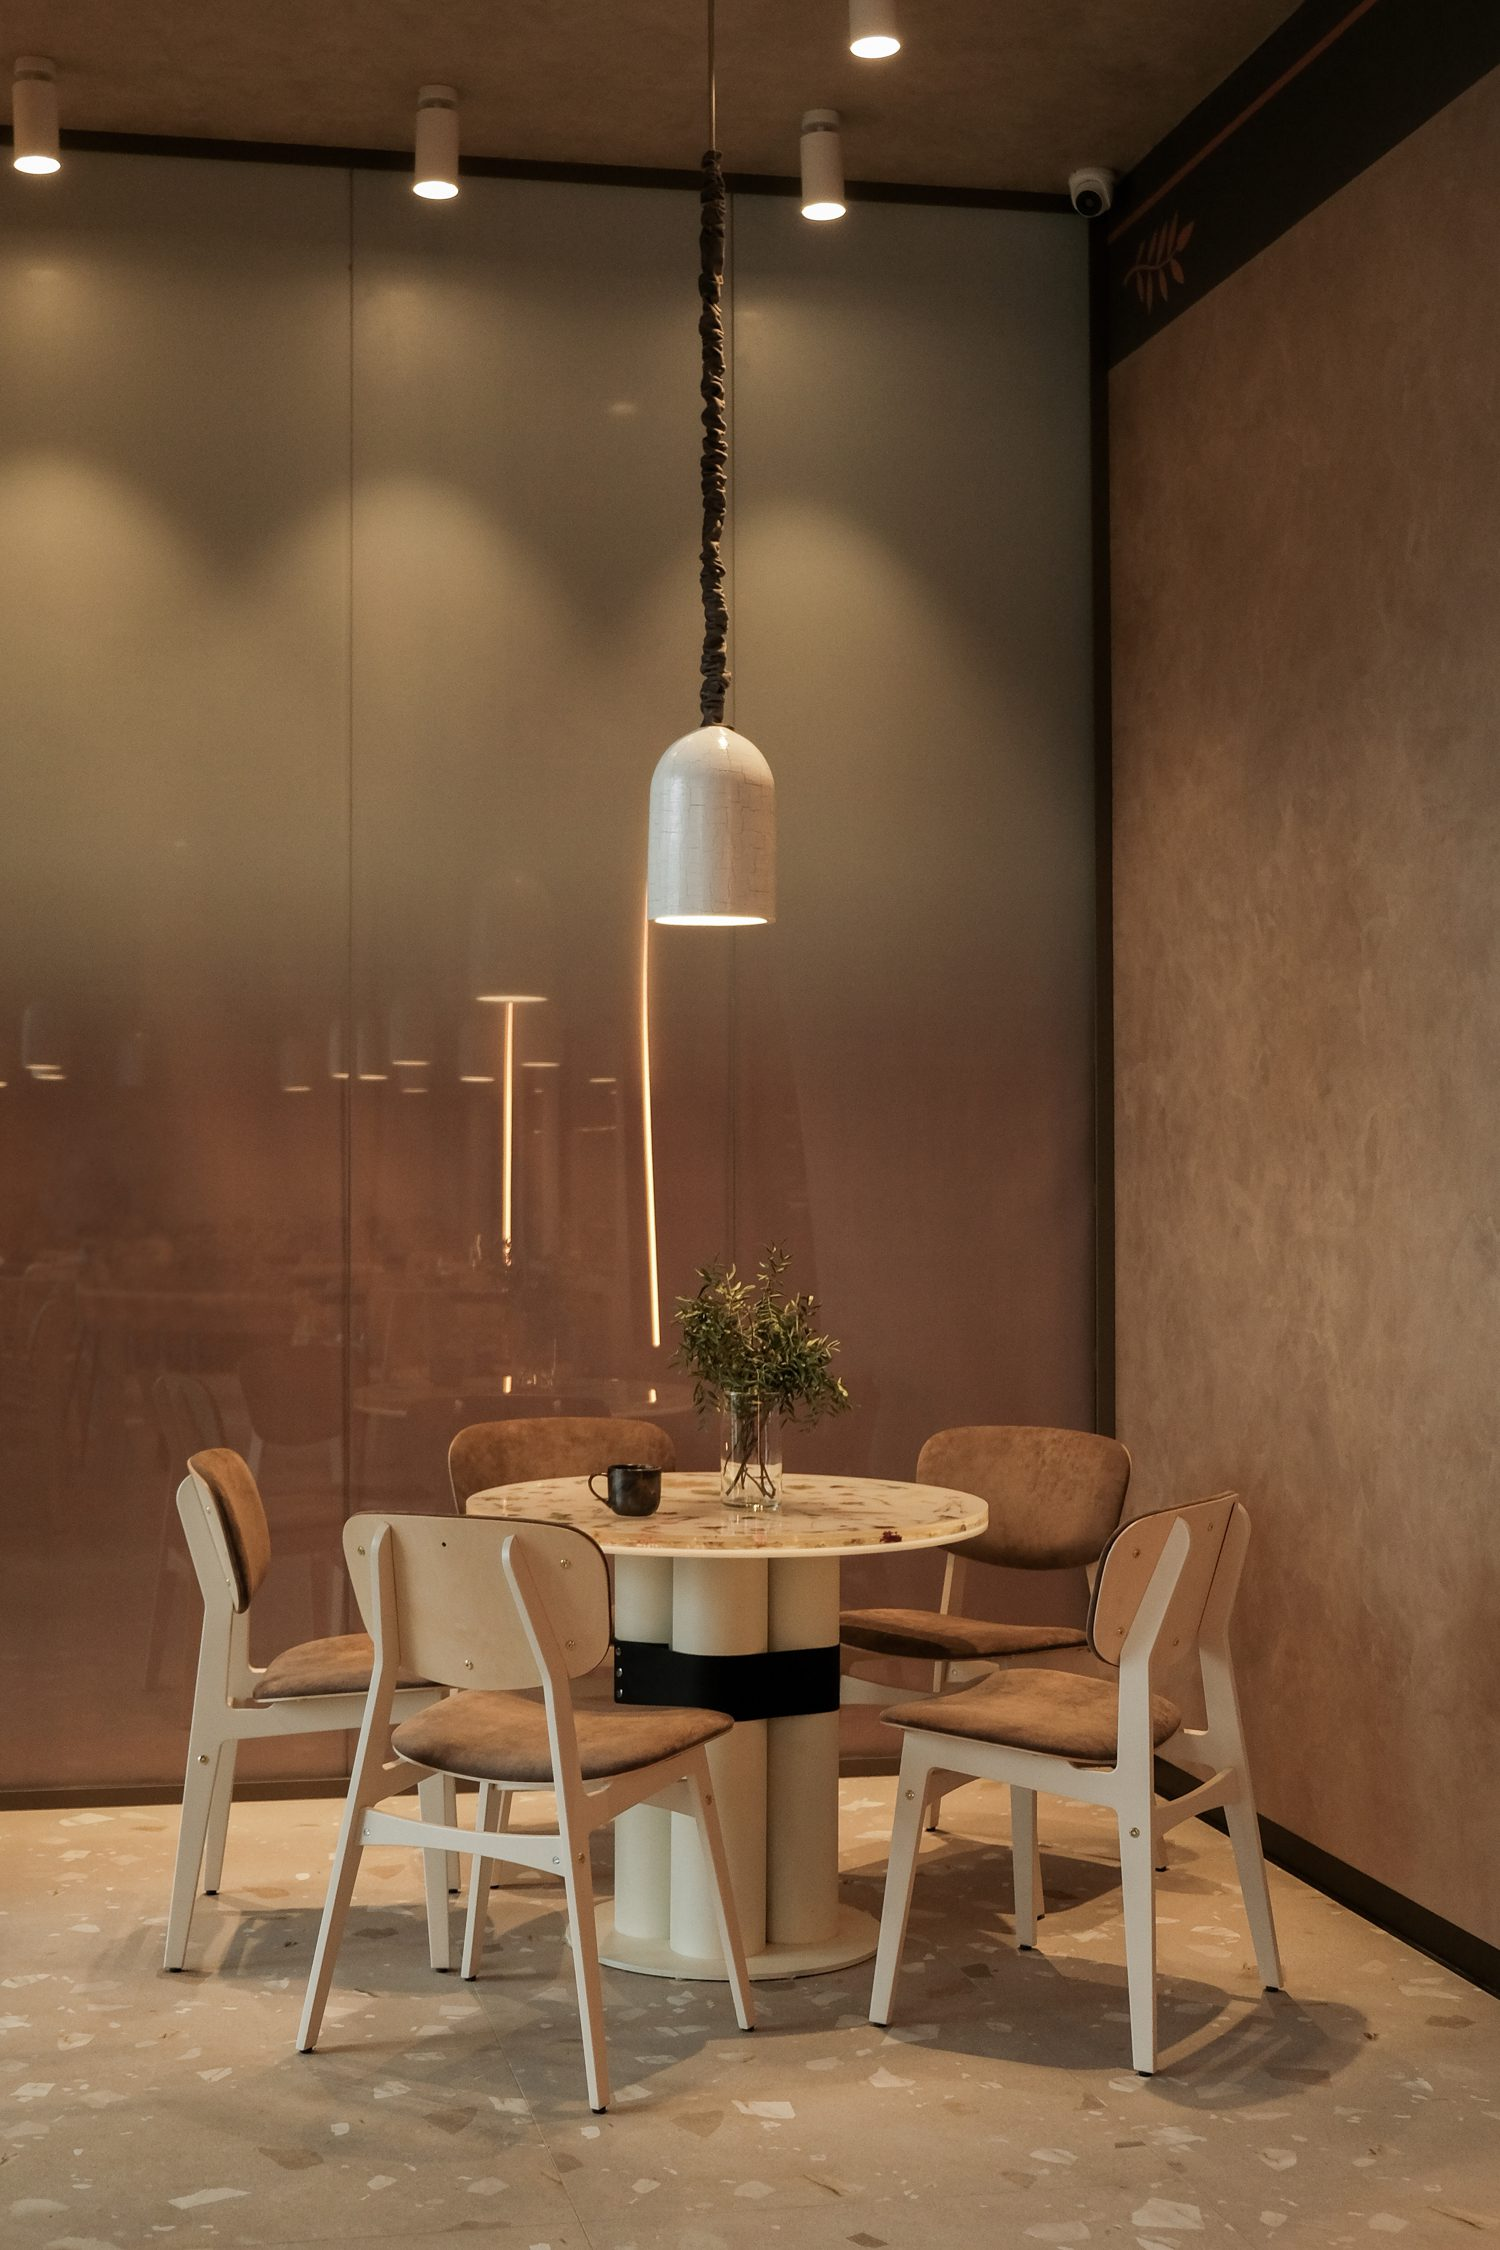 At the entrance, baguettes in a paper bag inspired the shape of the custom table's base.